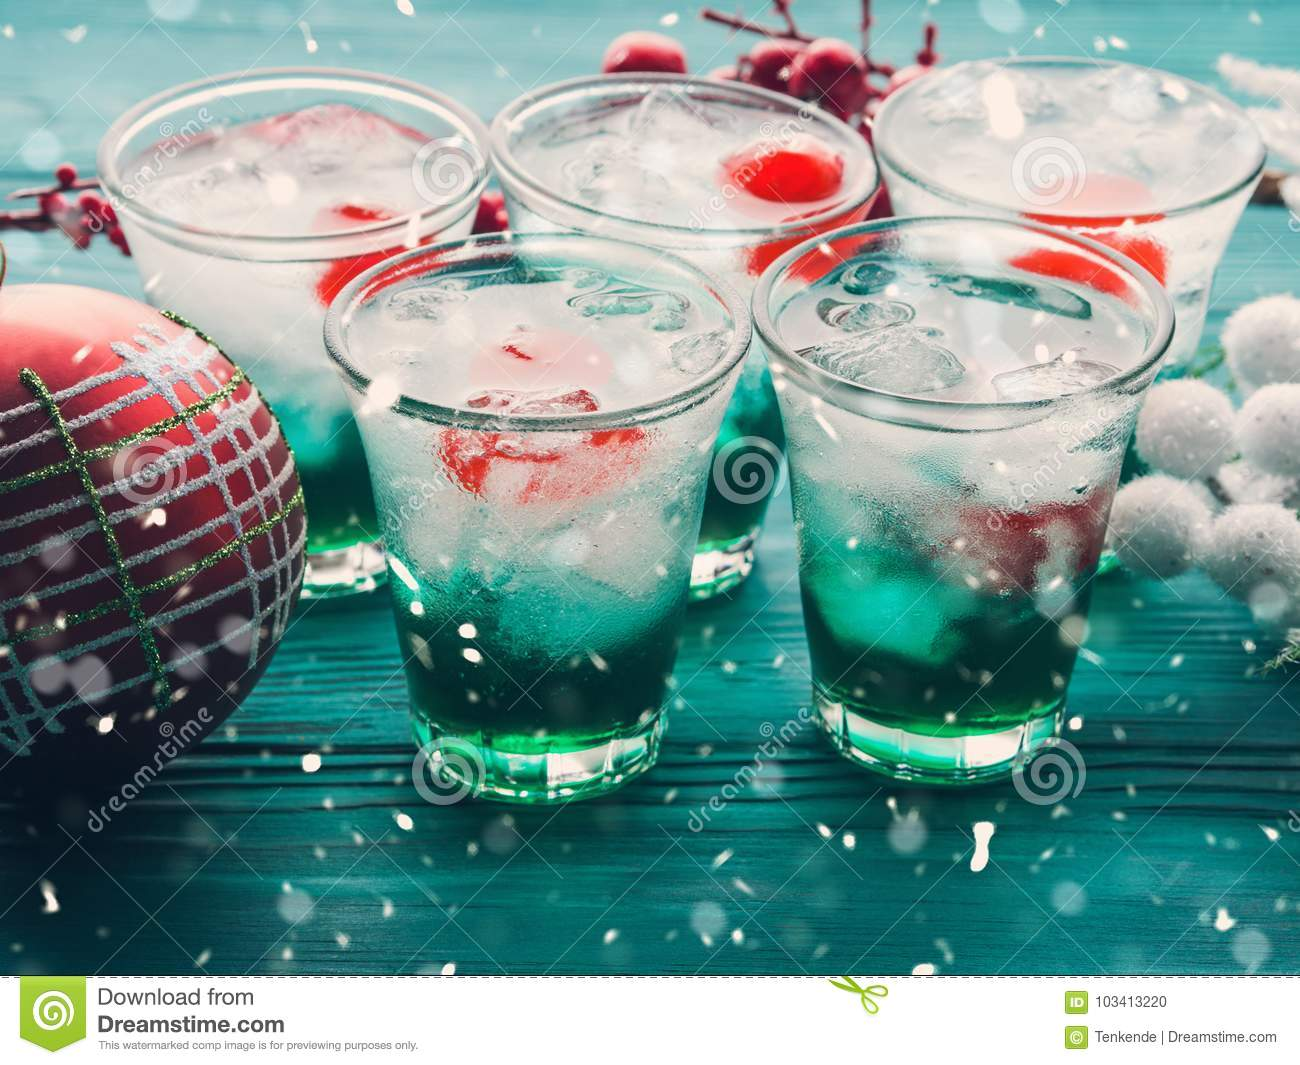 Christmas Drinks Alcohol.Christmas Holiday Party Green And Red Drinks Stock Photo